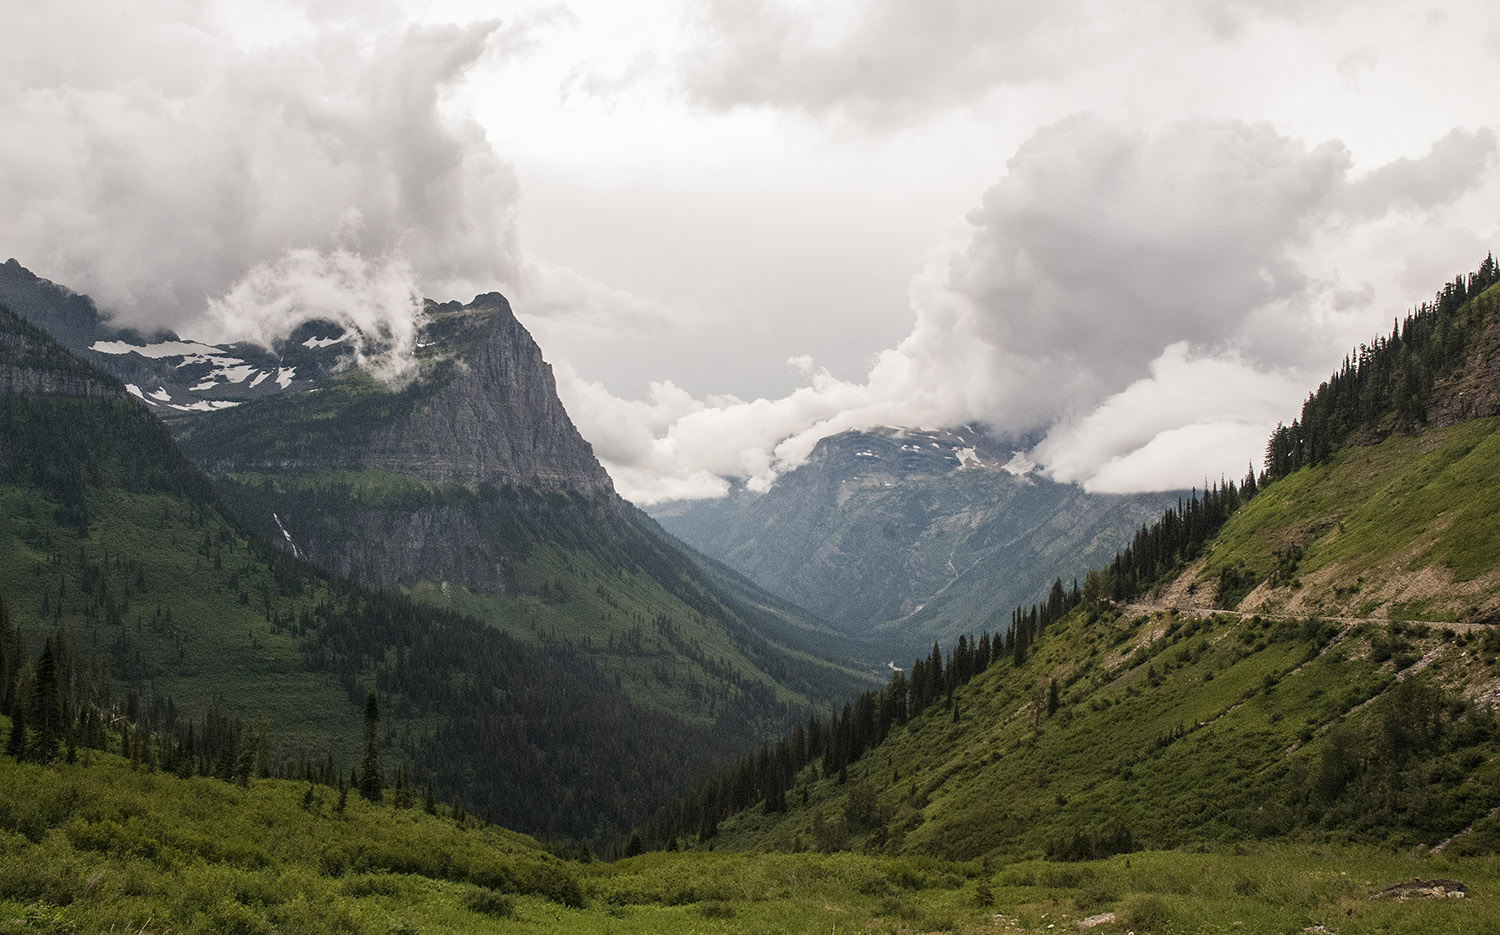 Clouds rolling in over Glacier National Park